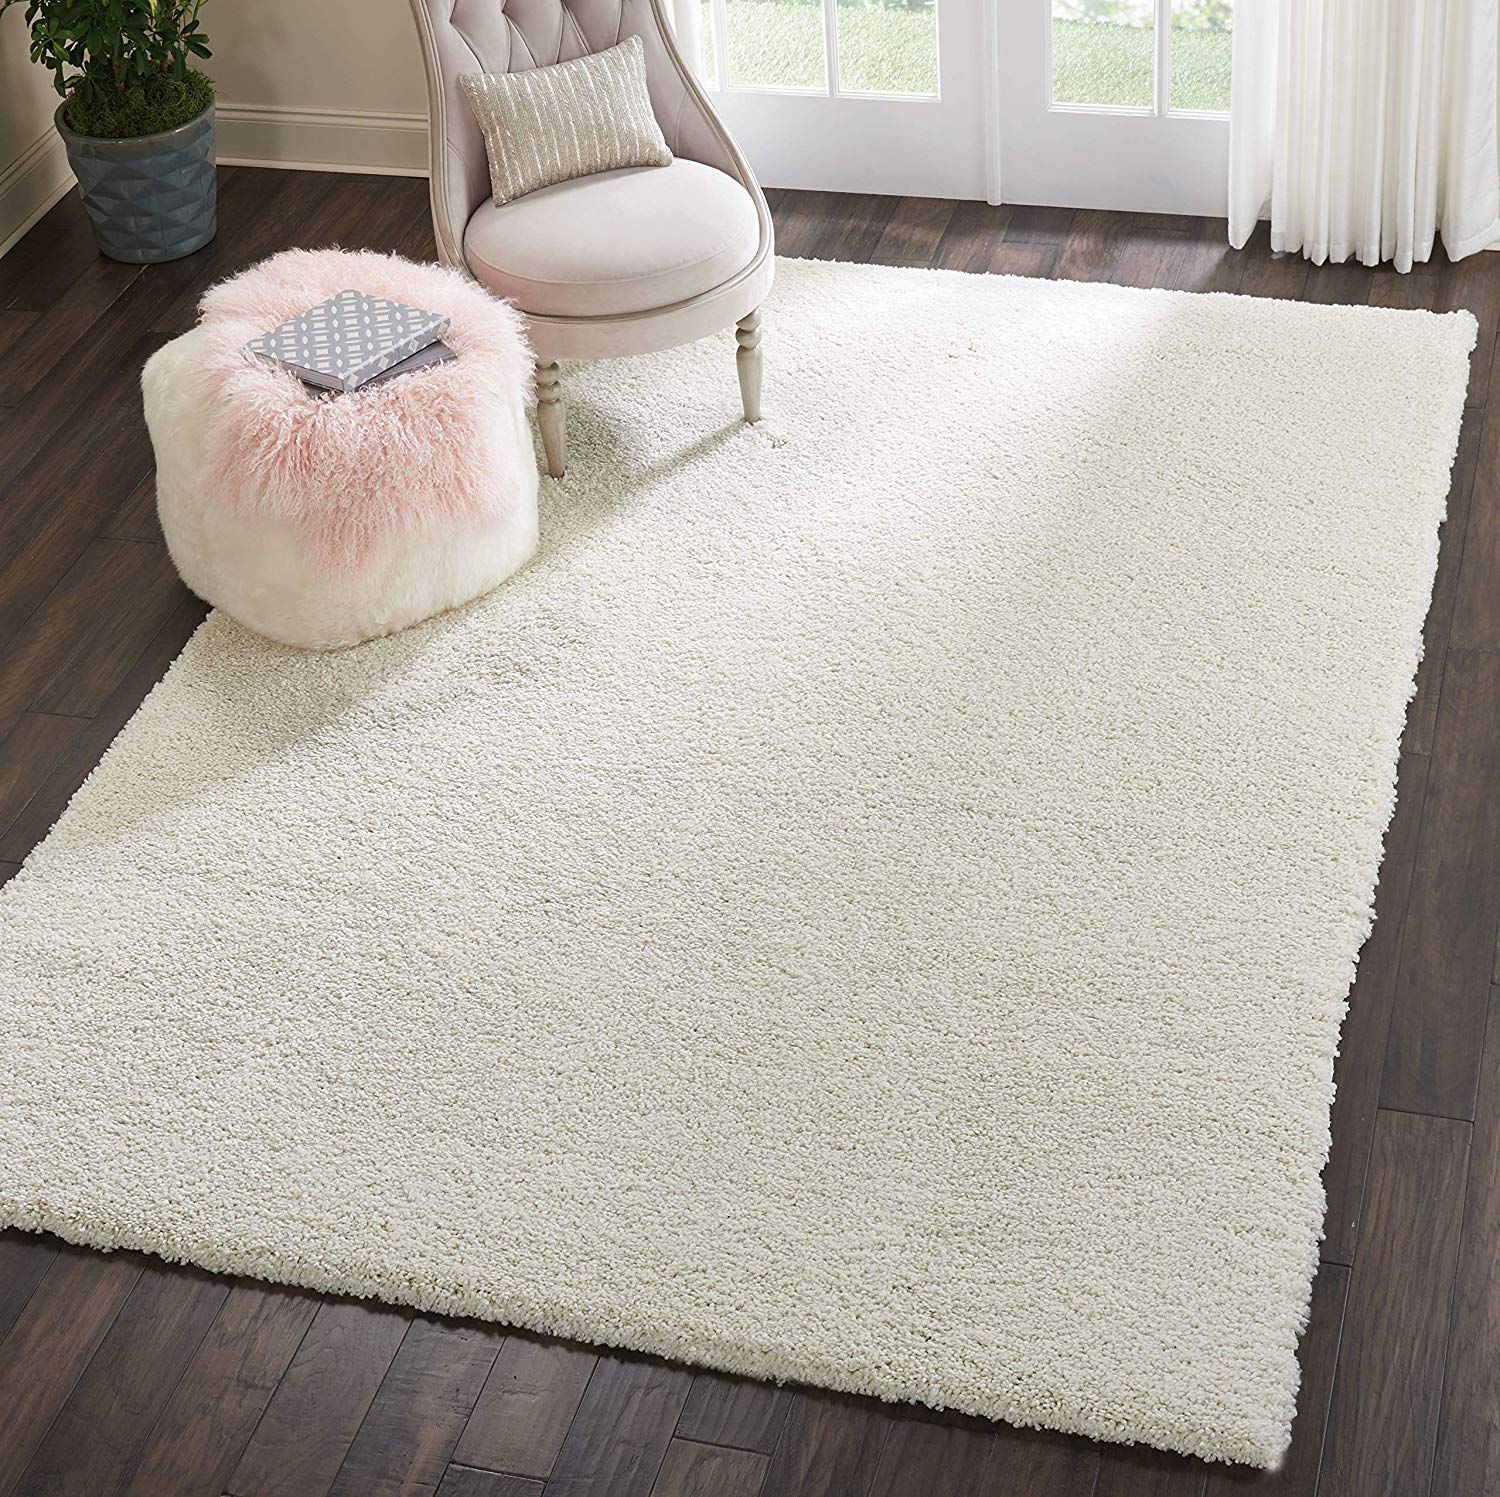 The softest carpets for your nursery